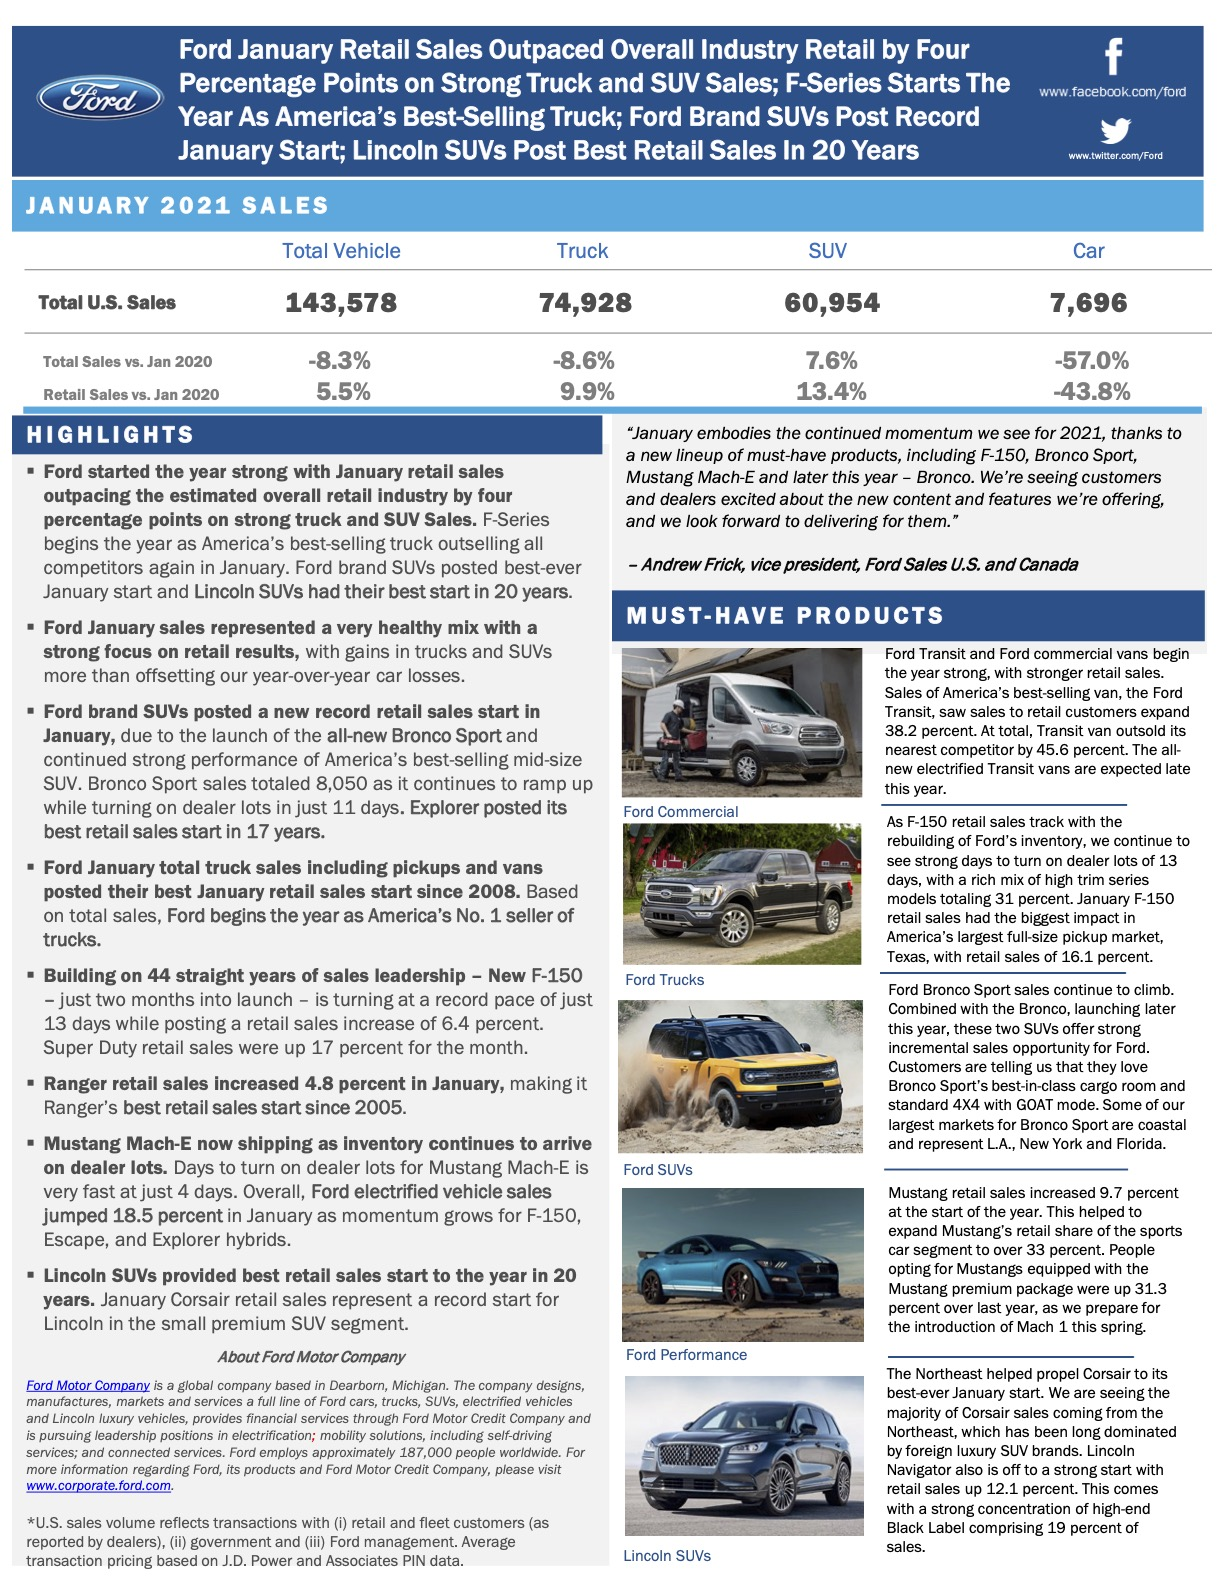 ford-january-2021-sales-release-1.jpg